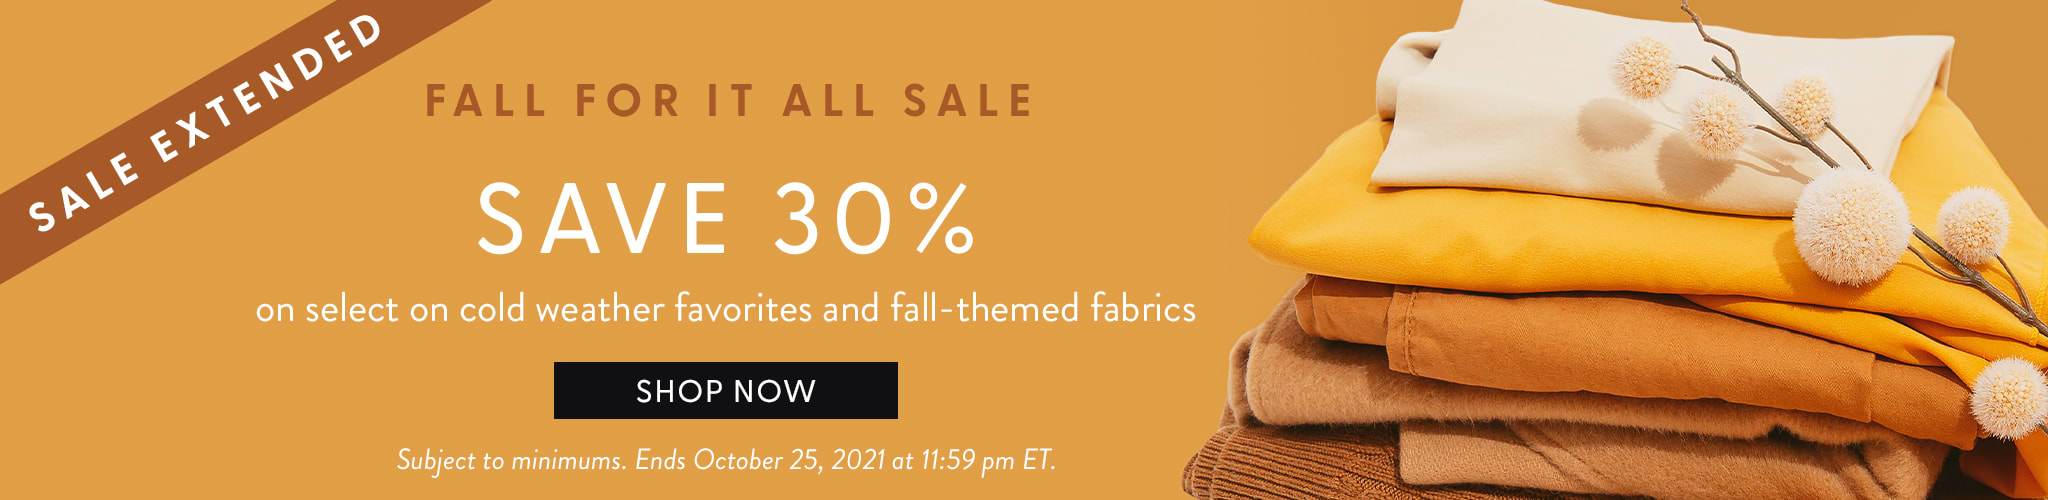 Sale Extended. Fall for it All Sale. Save 30 percent on select cold weather favorites and fall-themed fabrics. Shop now. Subj